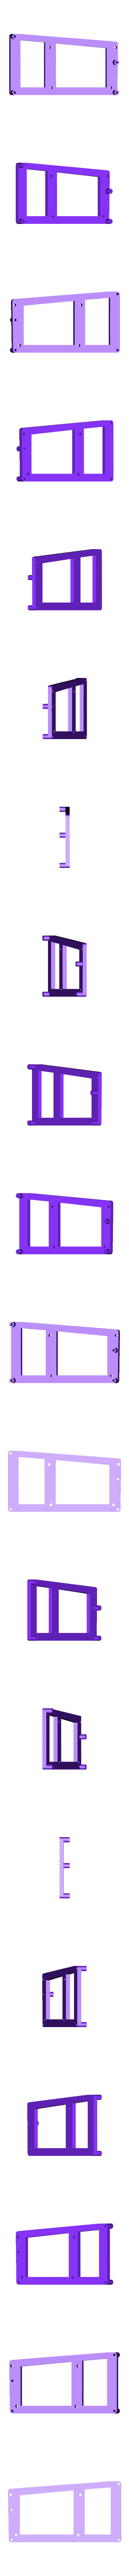 NCS_Rumbamount.stl Download free STL file NCS P3-v Steel Rumba mount for Prusa i3 steel • 3D print model, trentjw